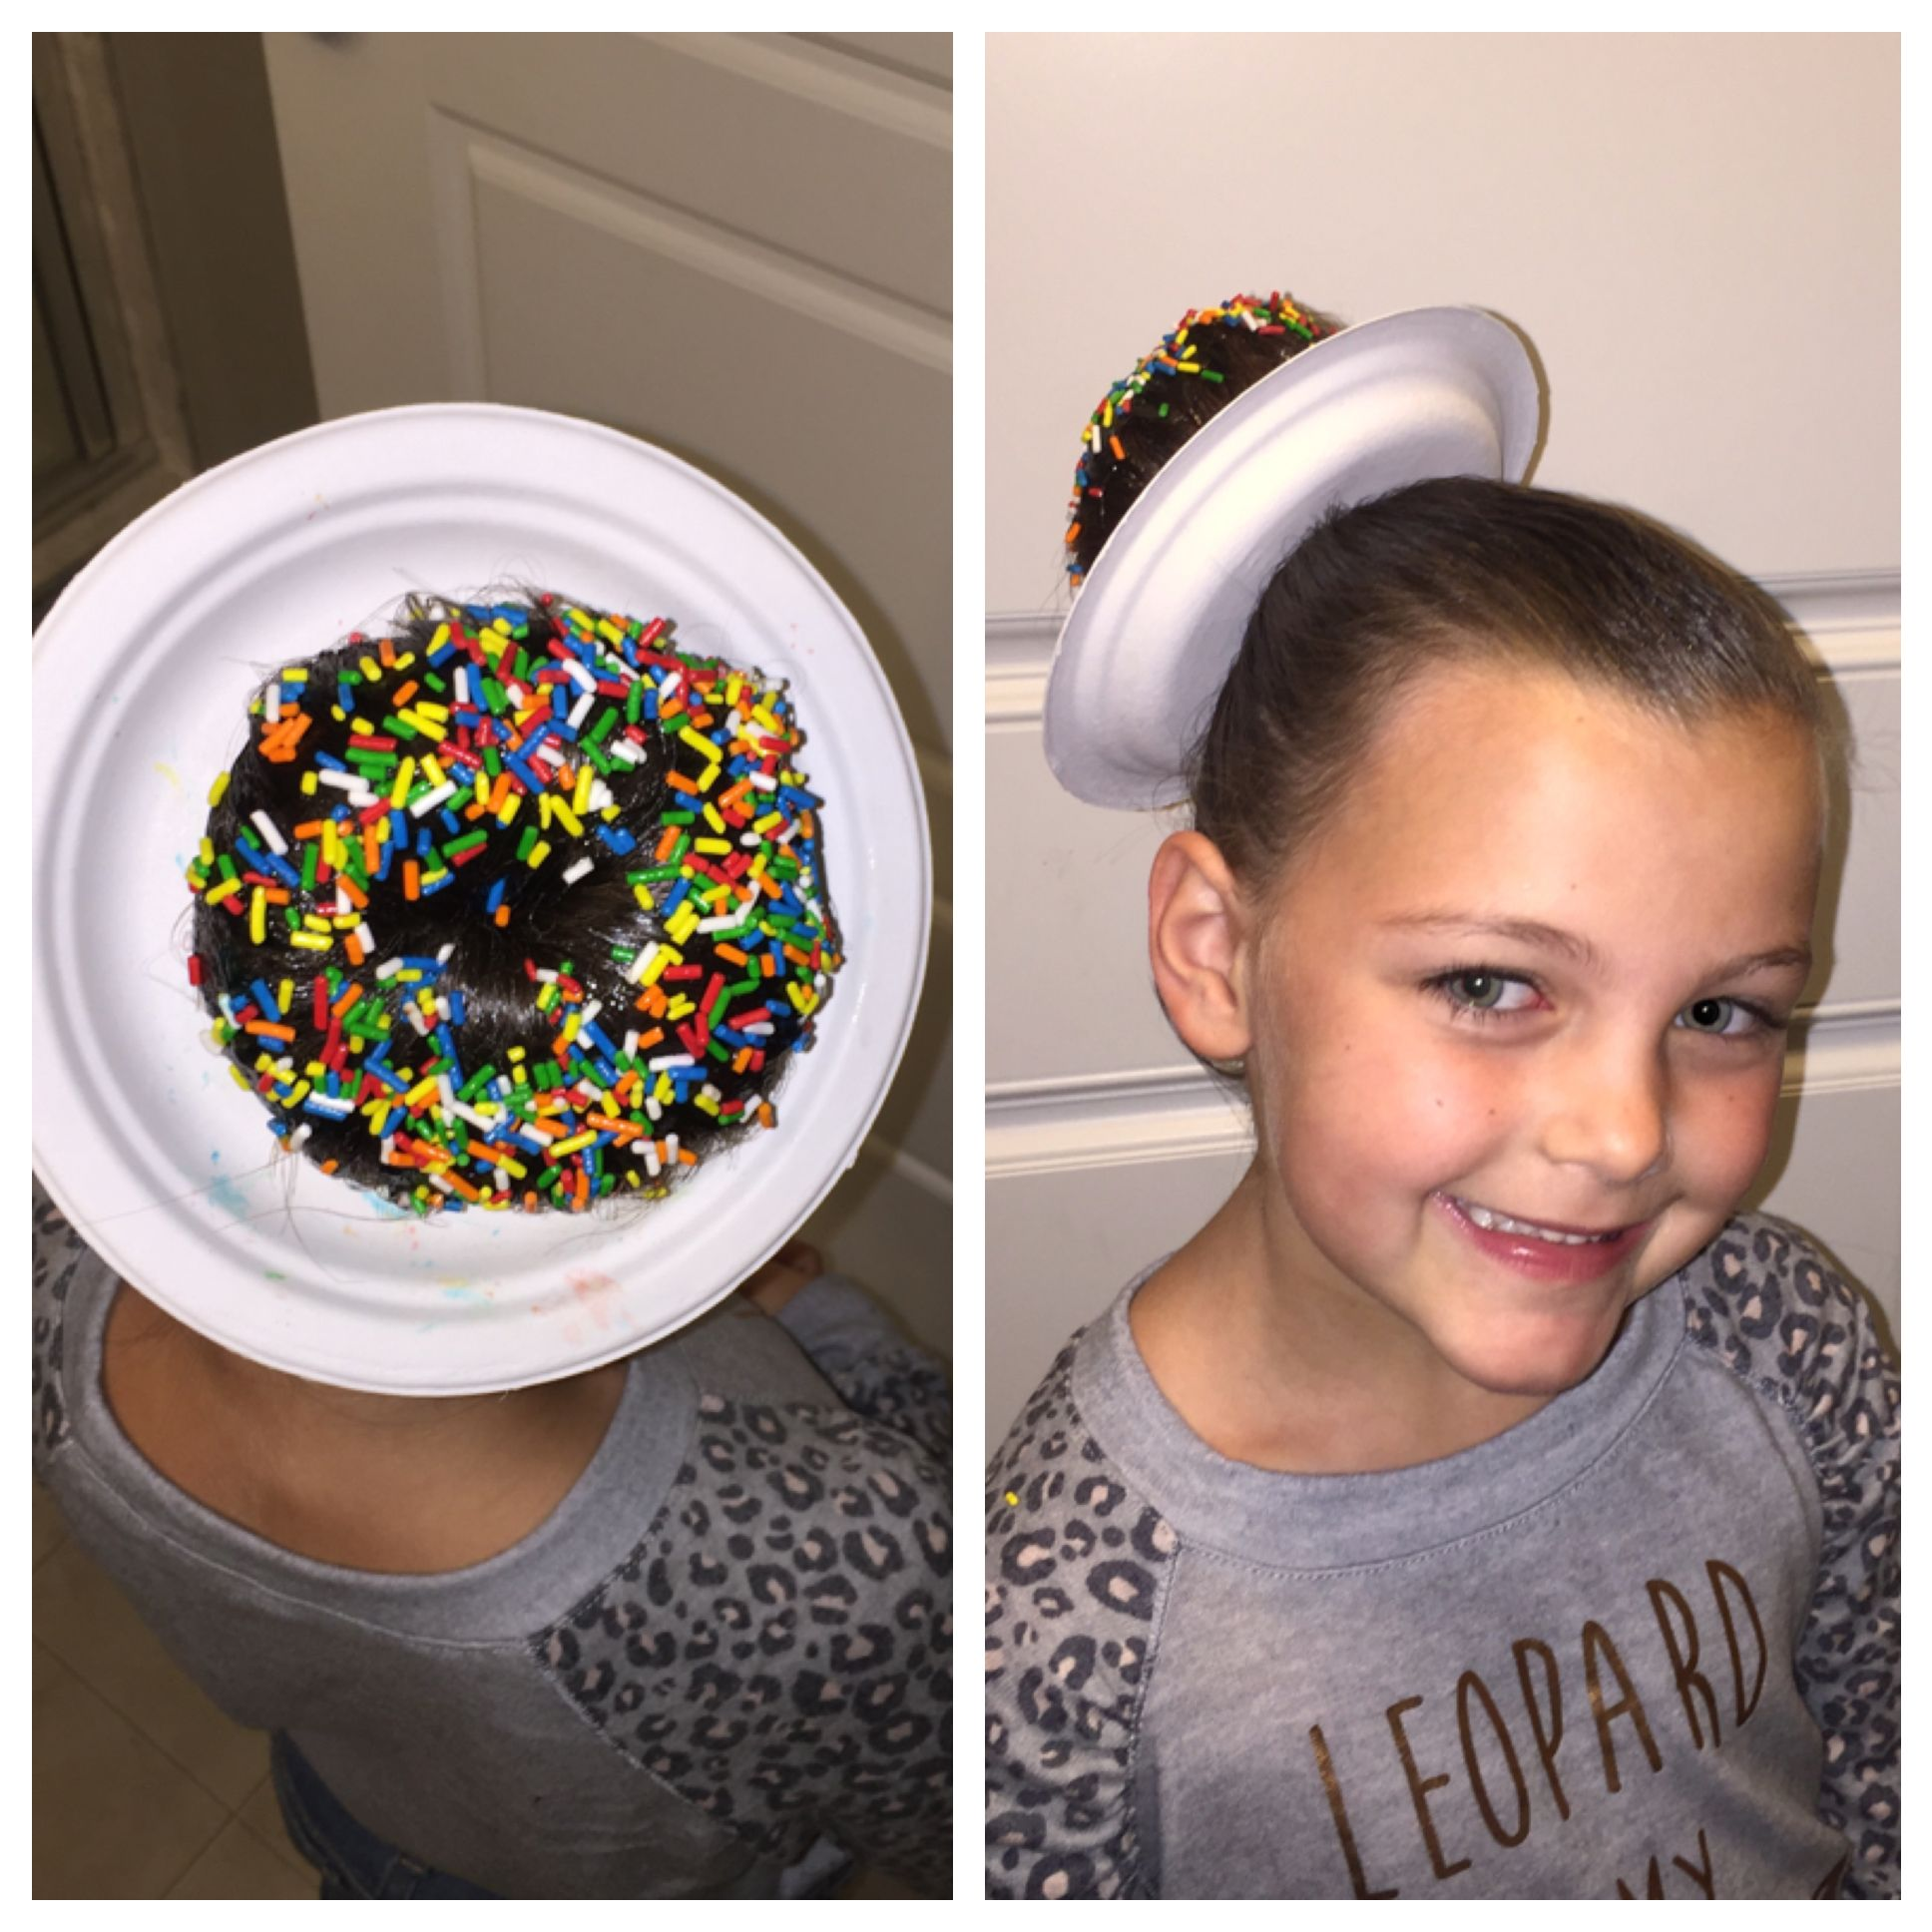 crazy hair day donut hair: cut hole in small plate. make